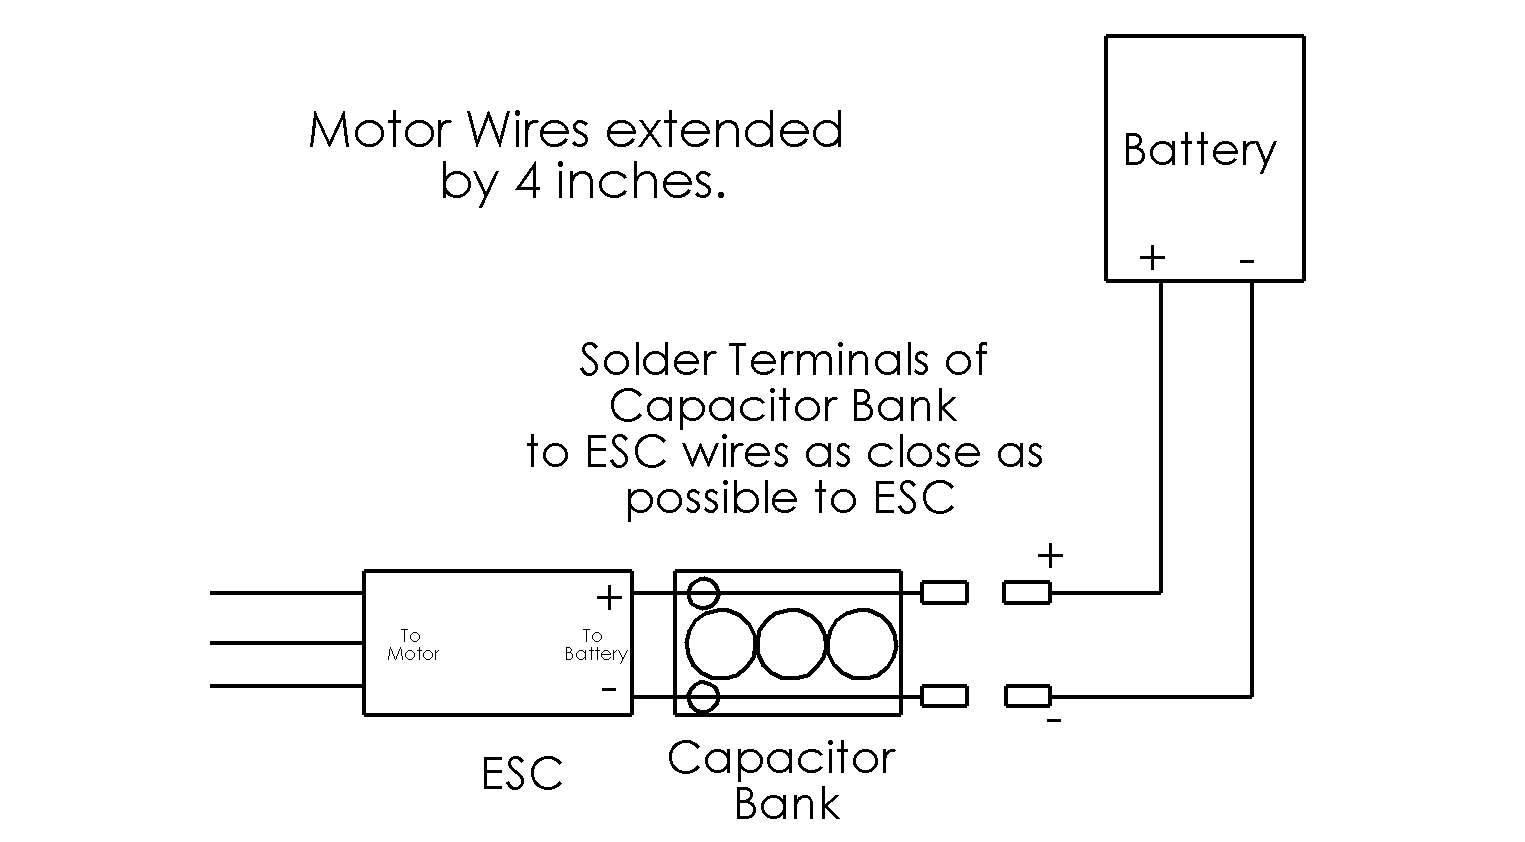 How to Solder Capacitor Bank to Extend ESC Wires